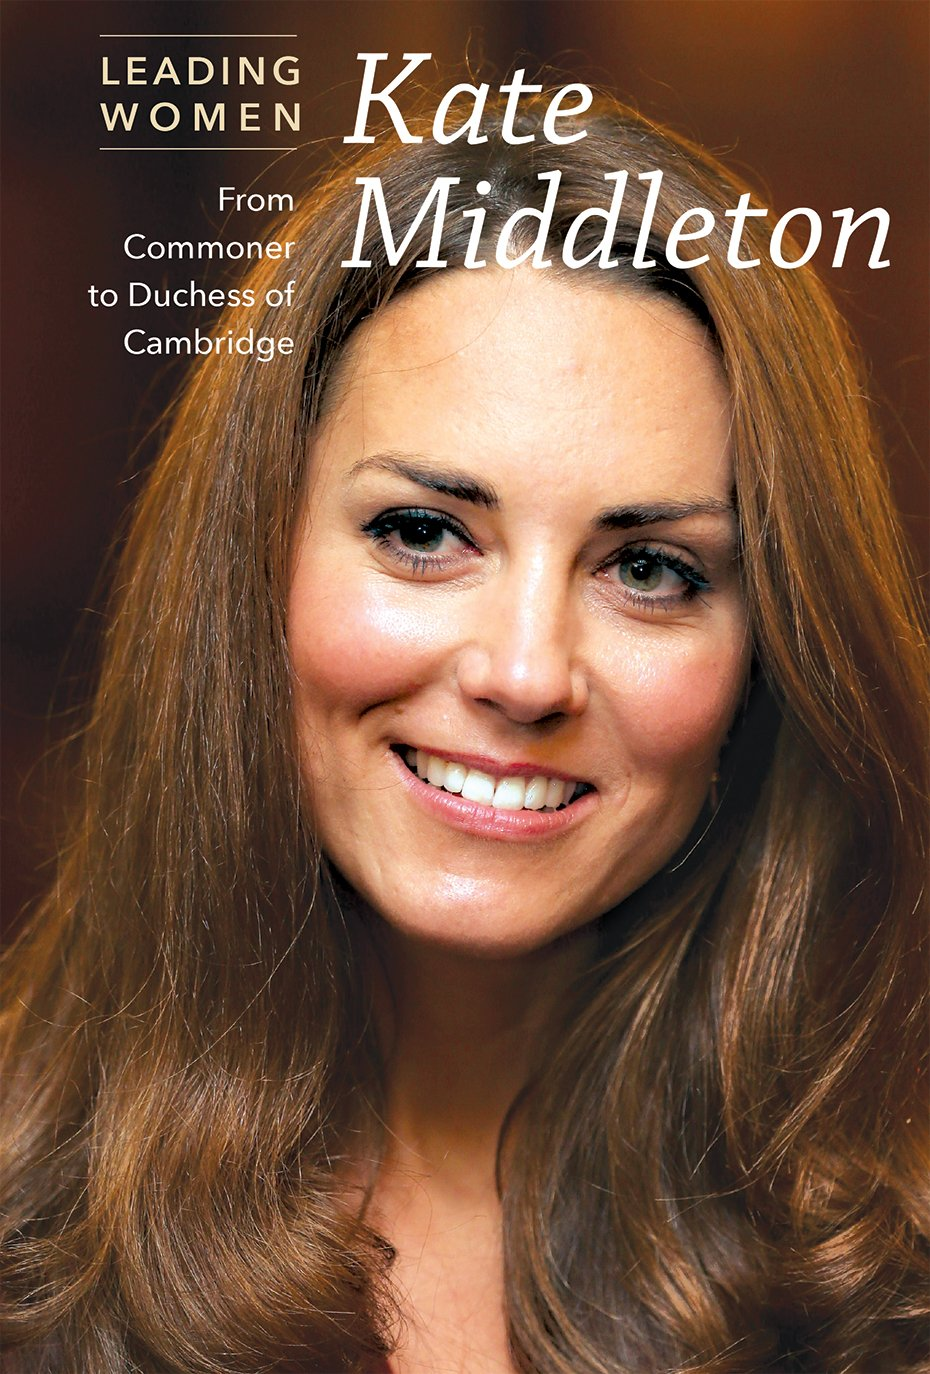 kate-middleton-from-commoner-to-duchess-of-cambridge-leading-women